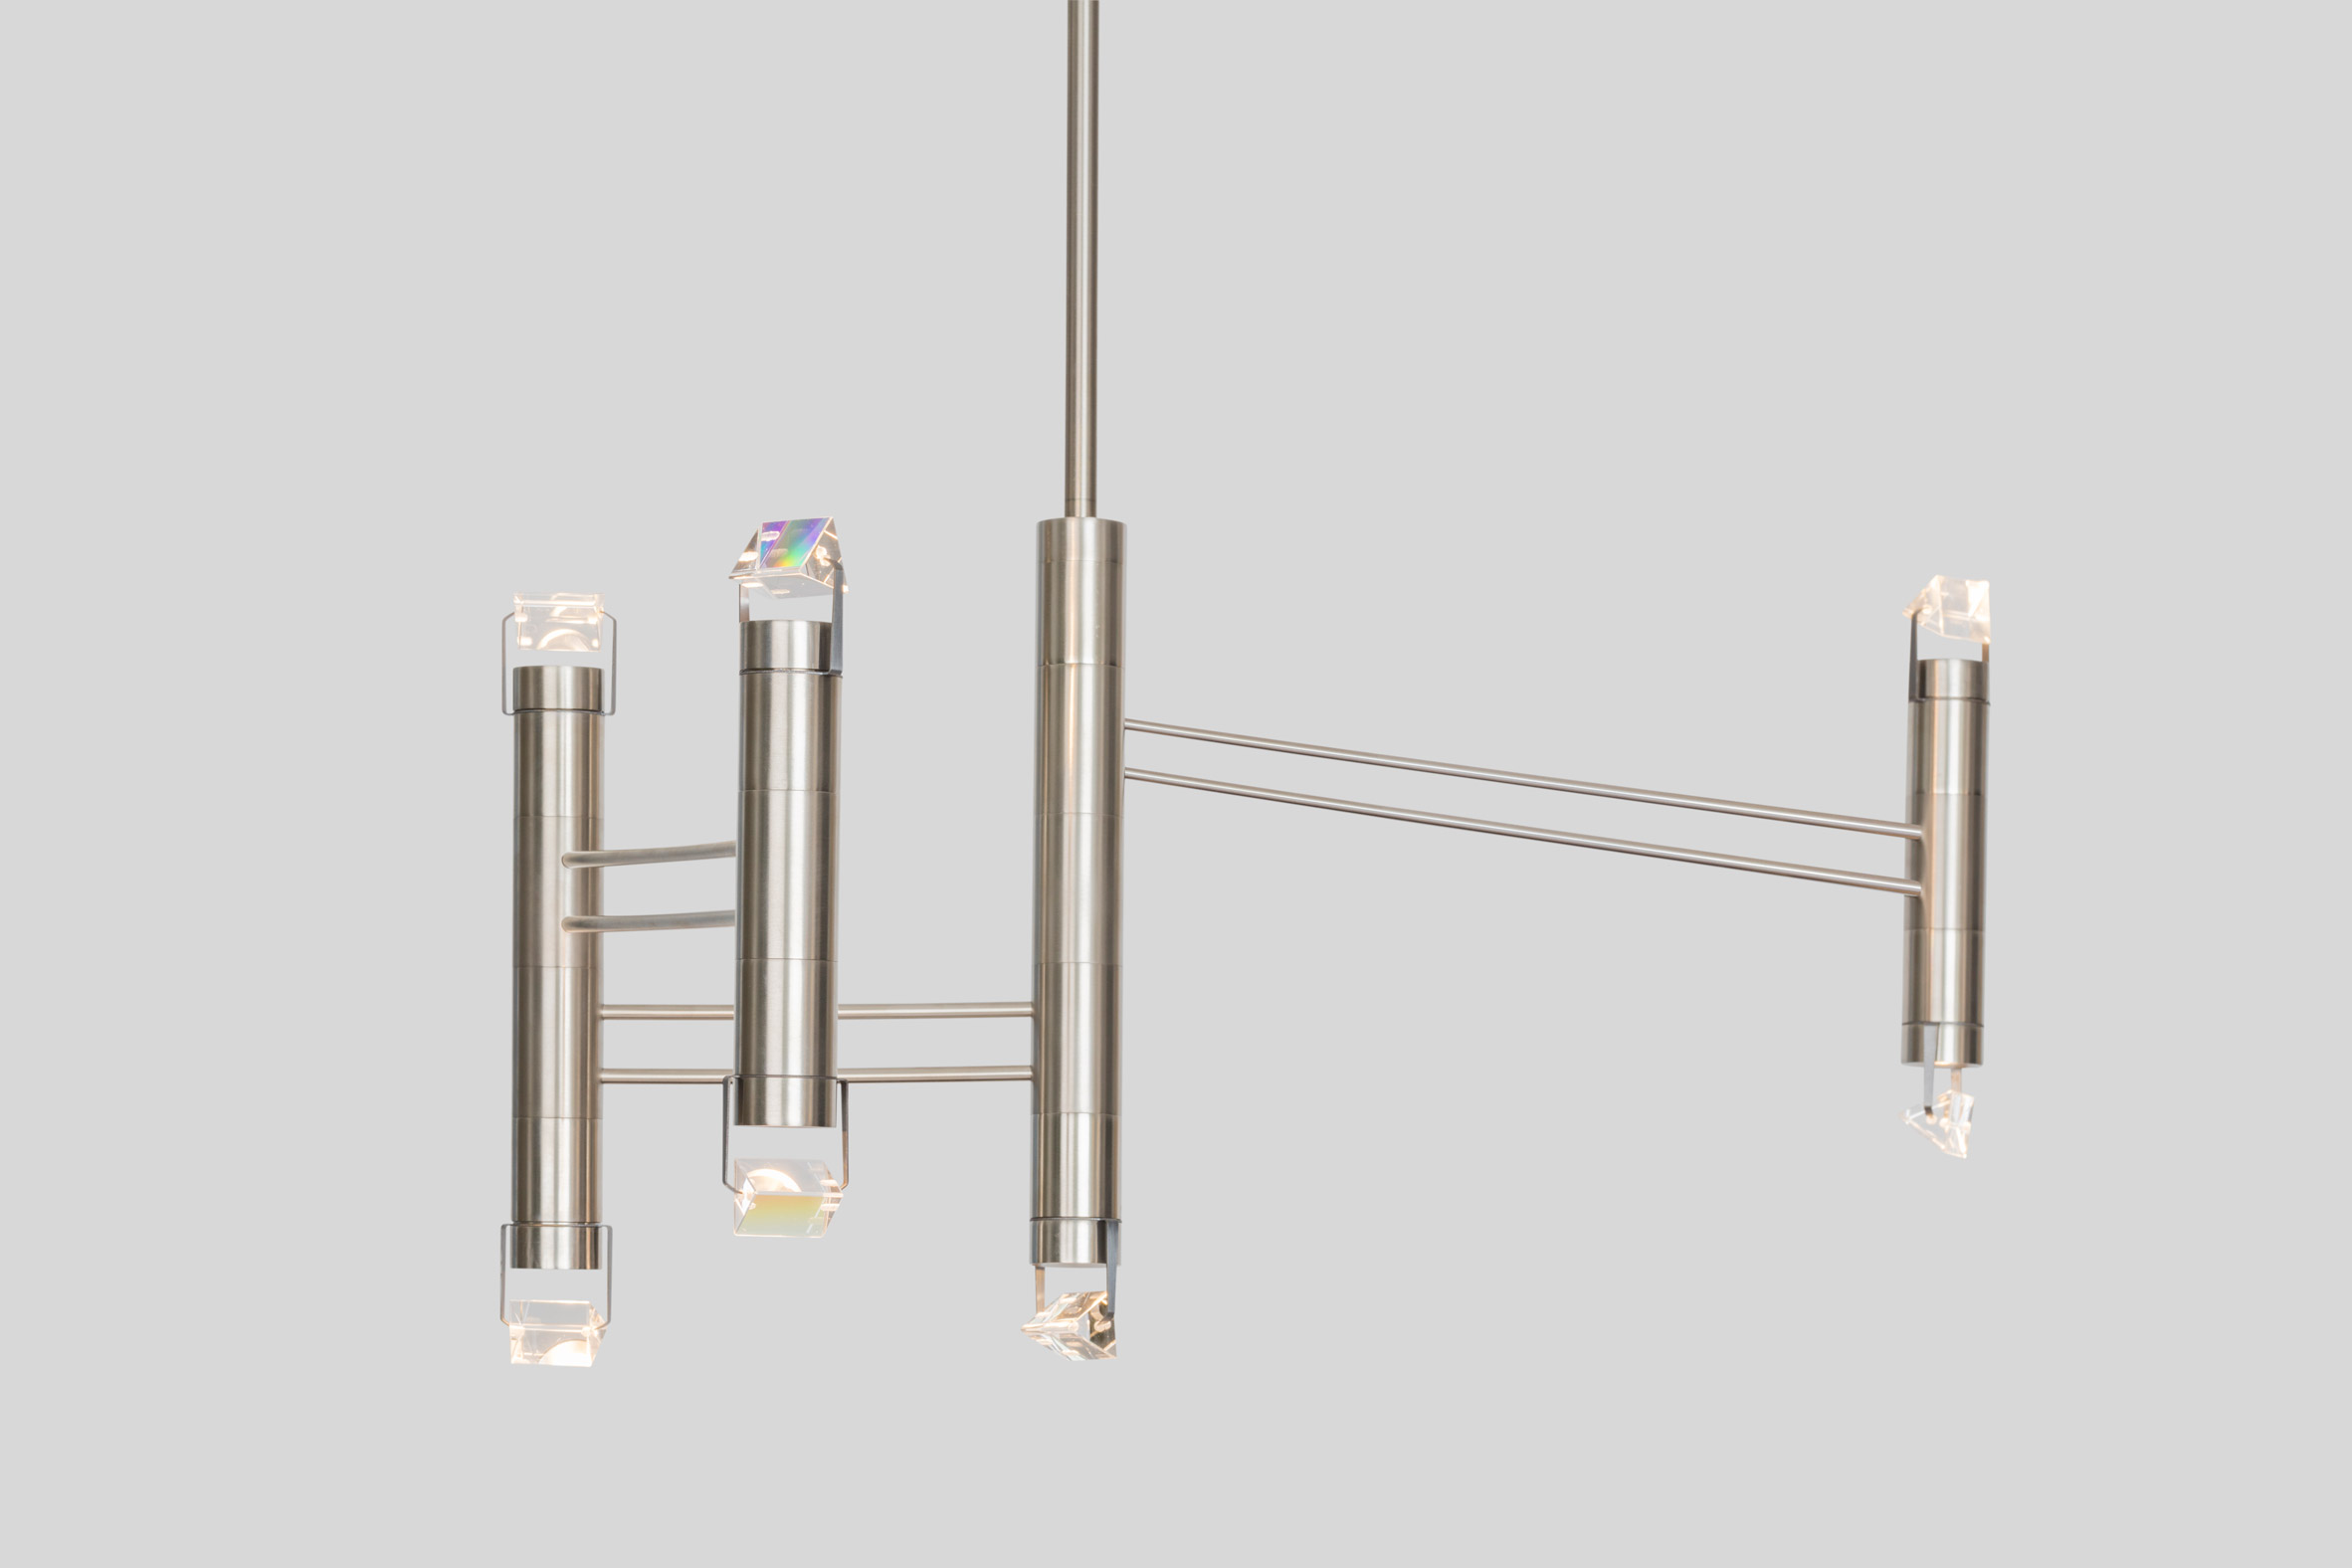 Bec Brittain launches Aries lighting collection among galactic projections